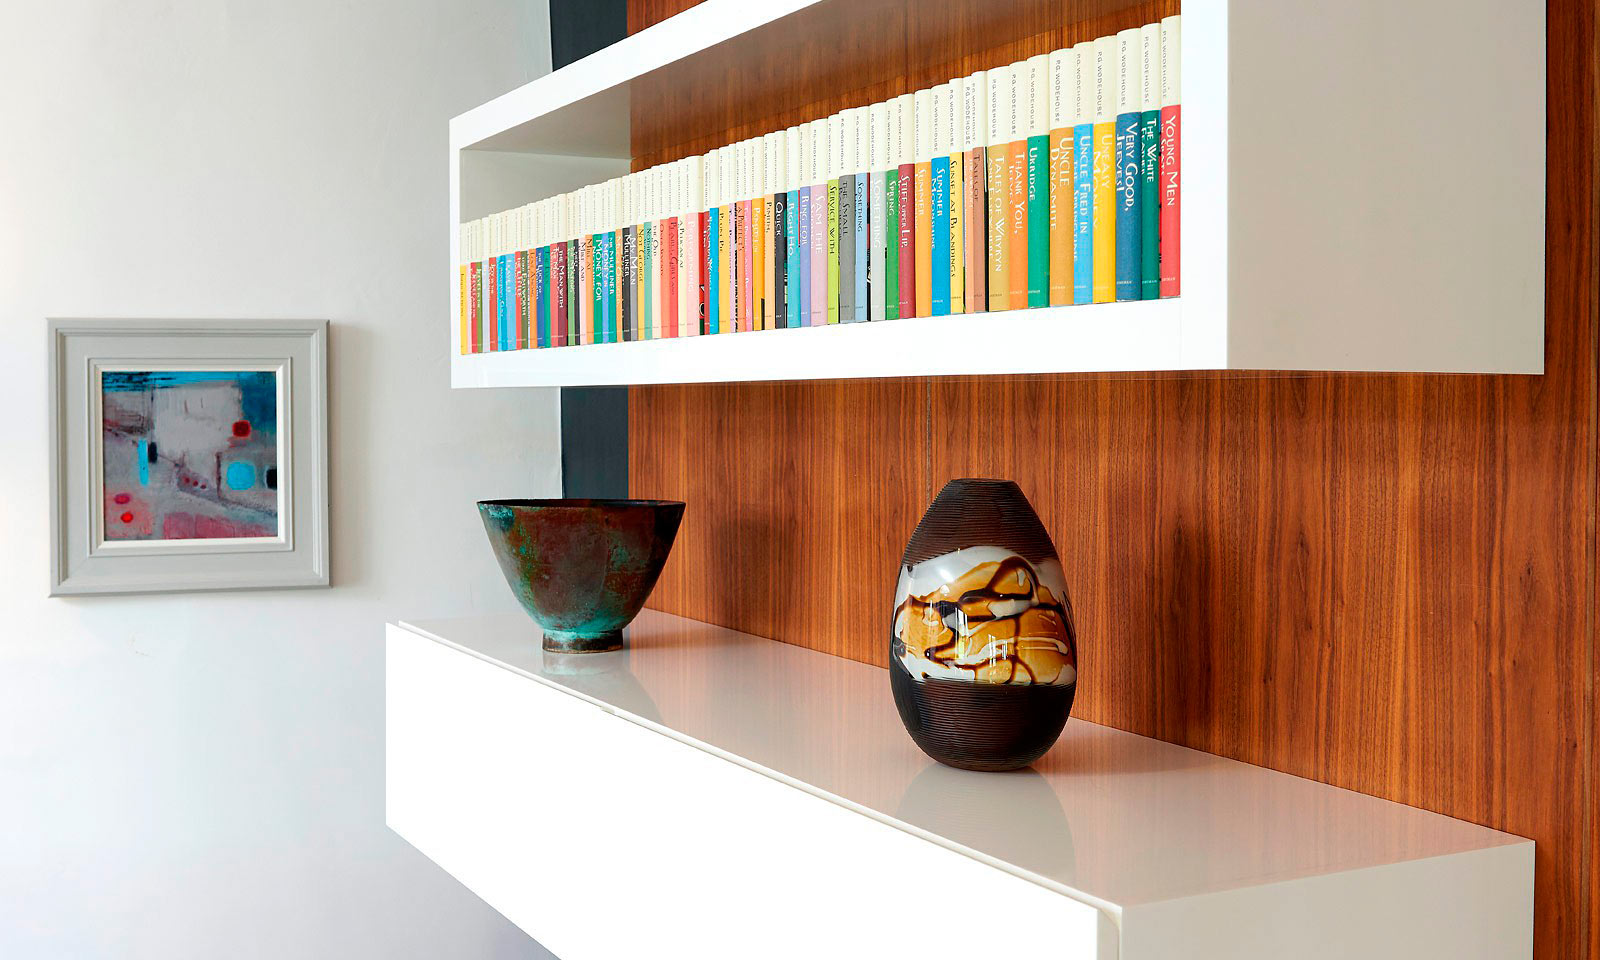 Parapan Shelves. Bespoke, modern, floating shelves, handmade from white Parapan and installed by our skilled cabinet makers at Mounts Hill Woodcraft.